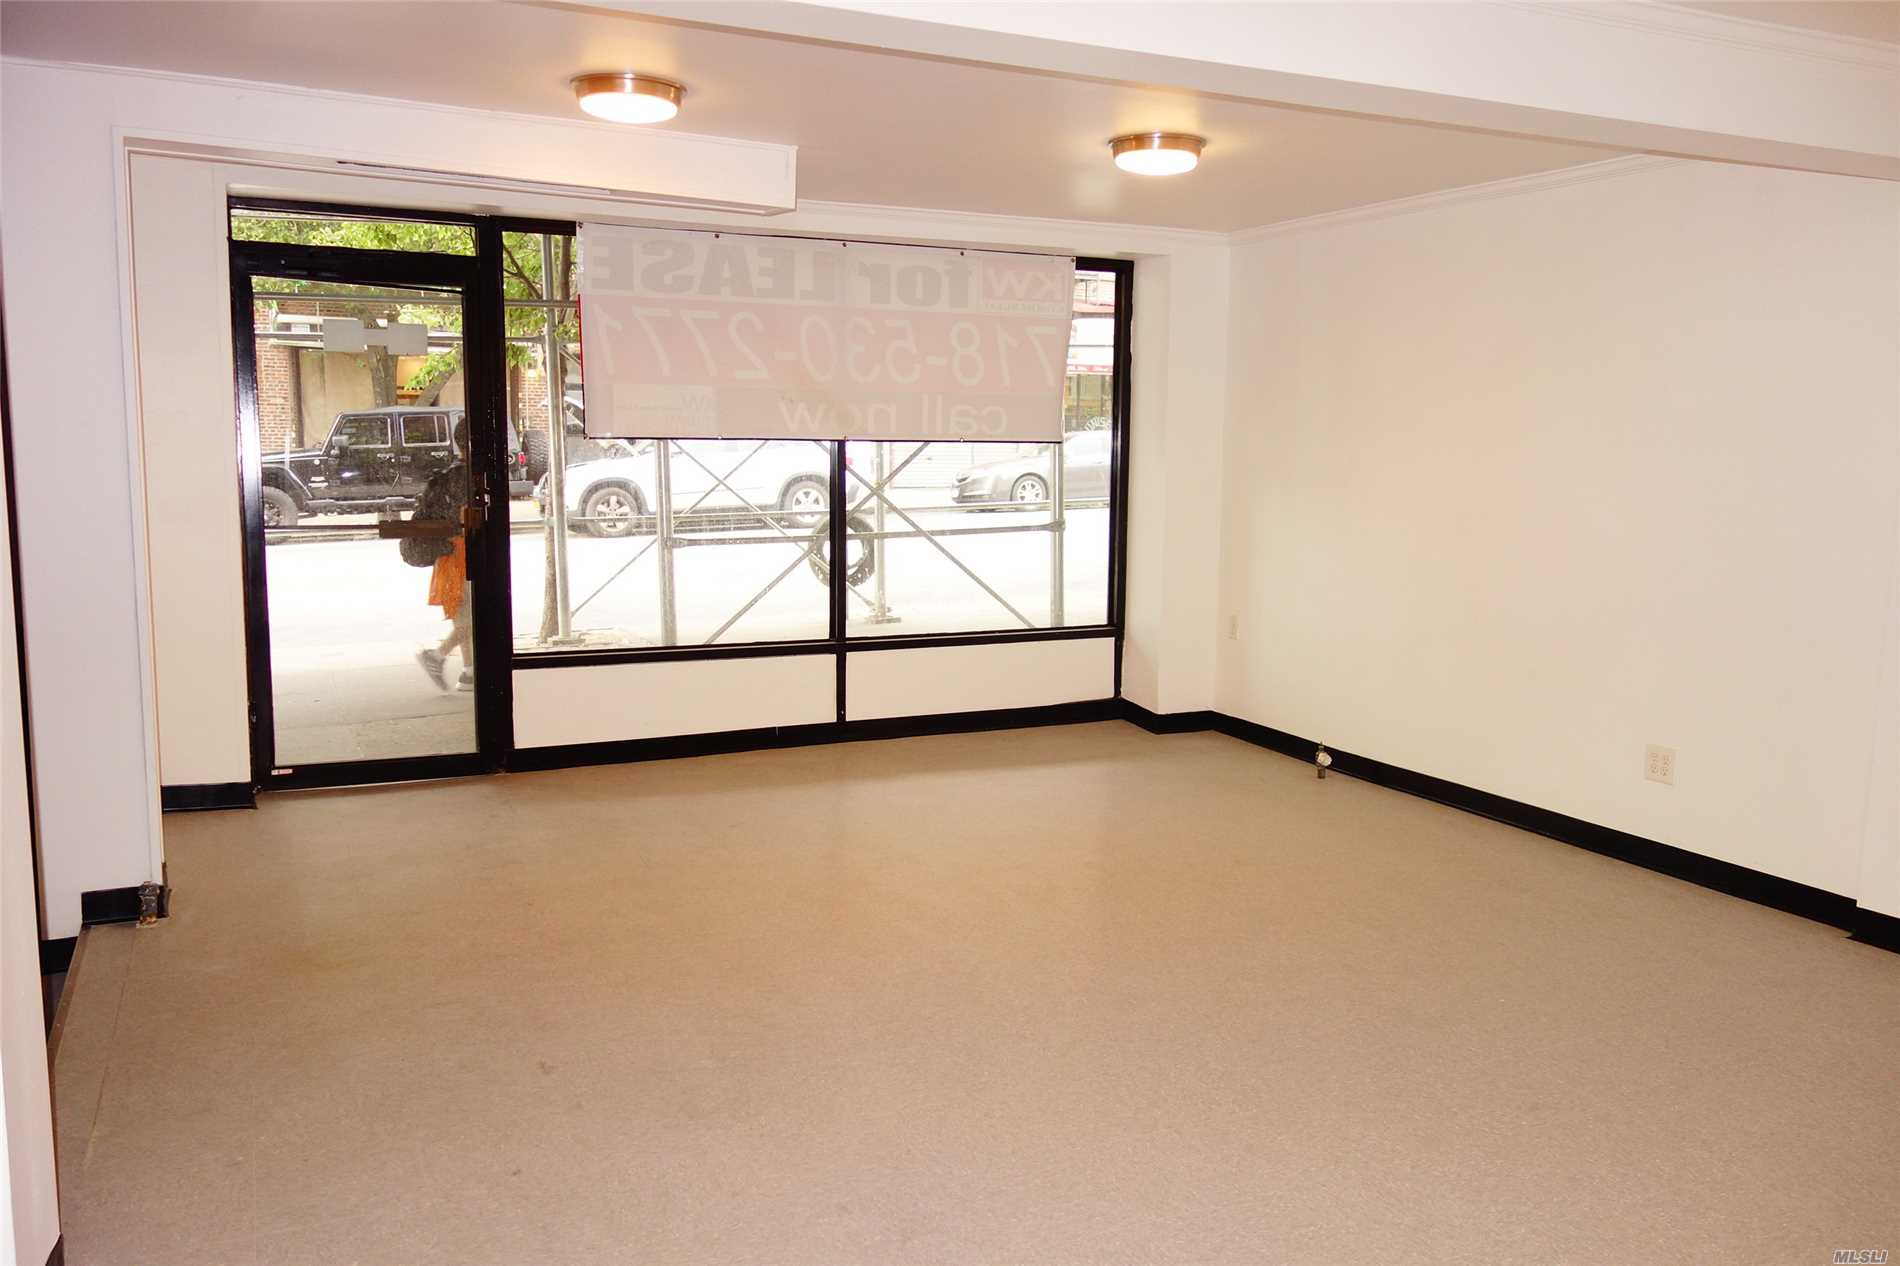 389 Sf Commercial Store For Lease. No Basement. $1750 Per Month @ 3910 47th Ave Sunnyside...